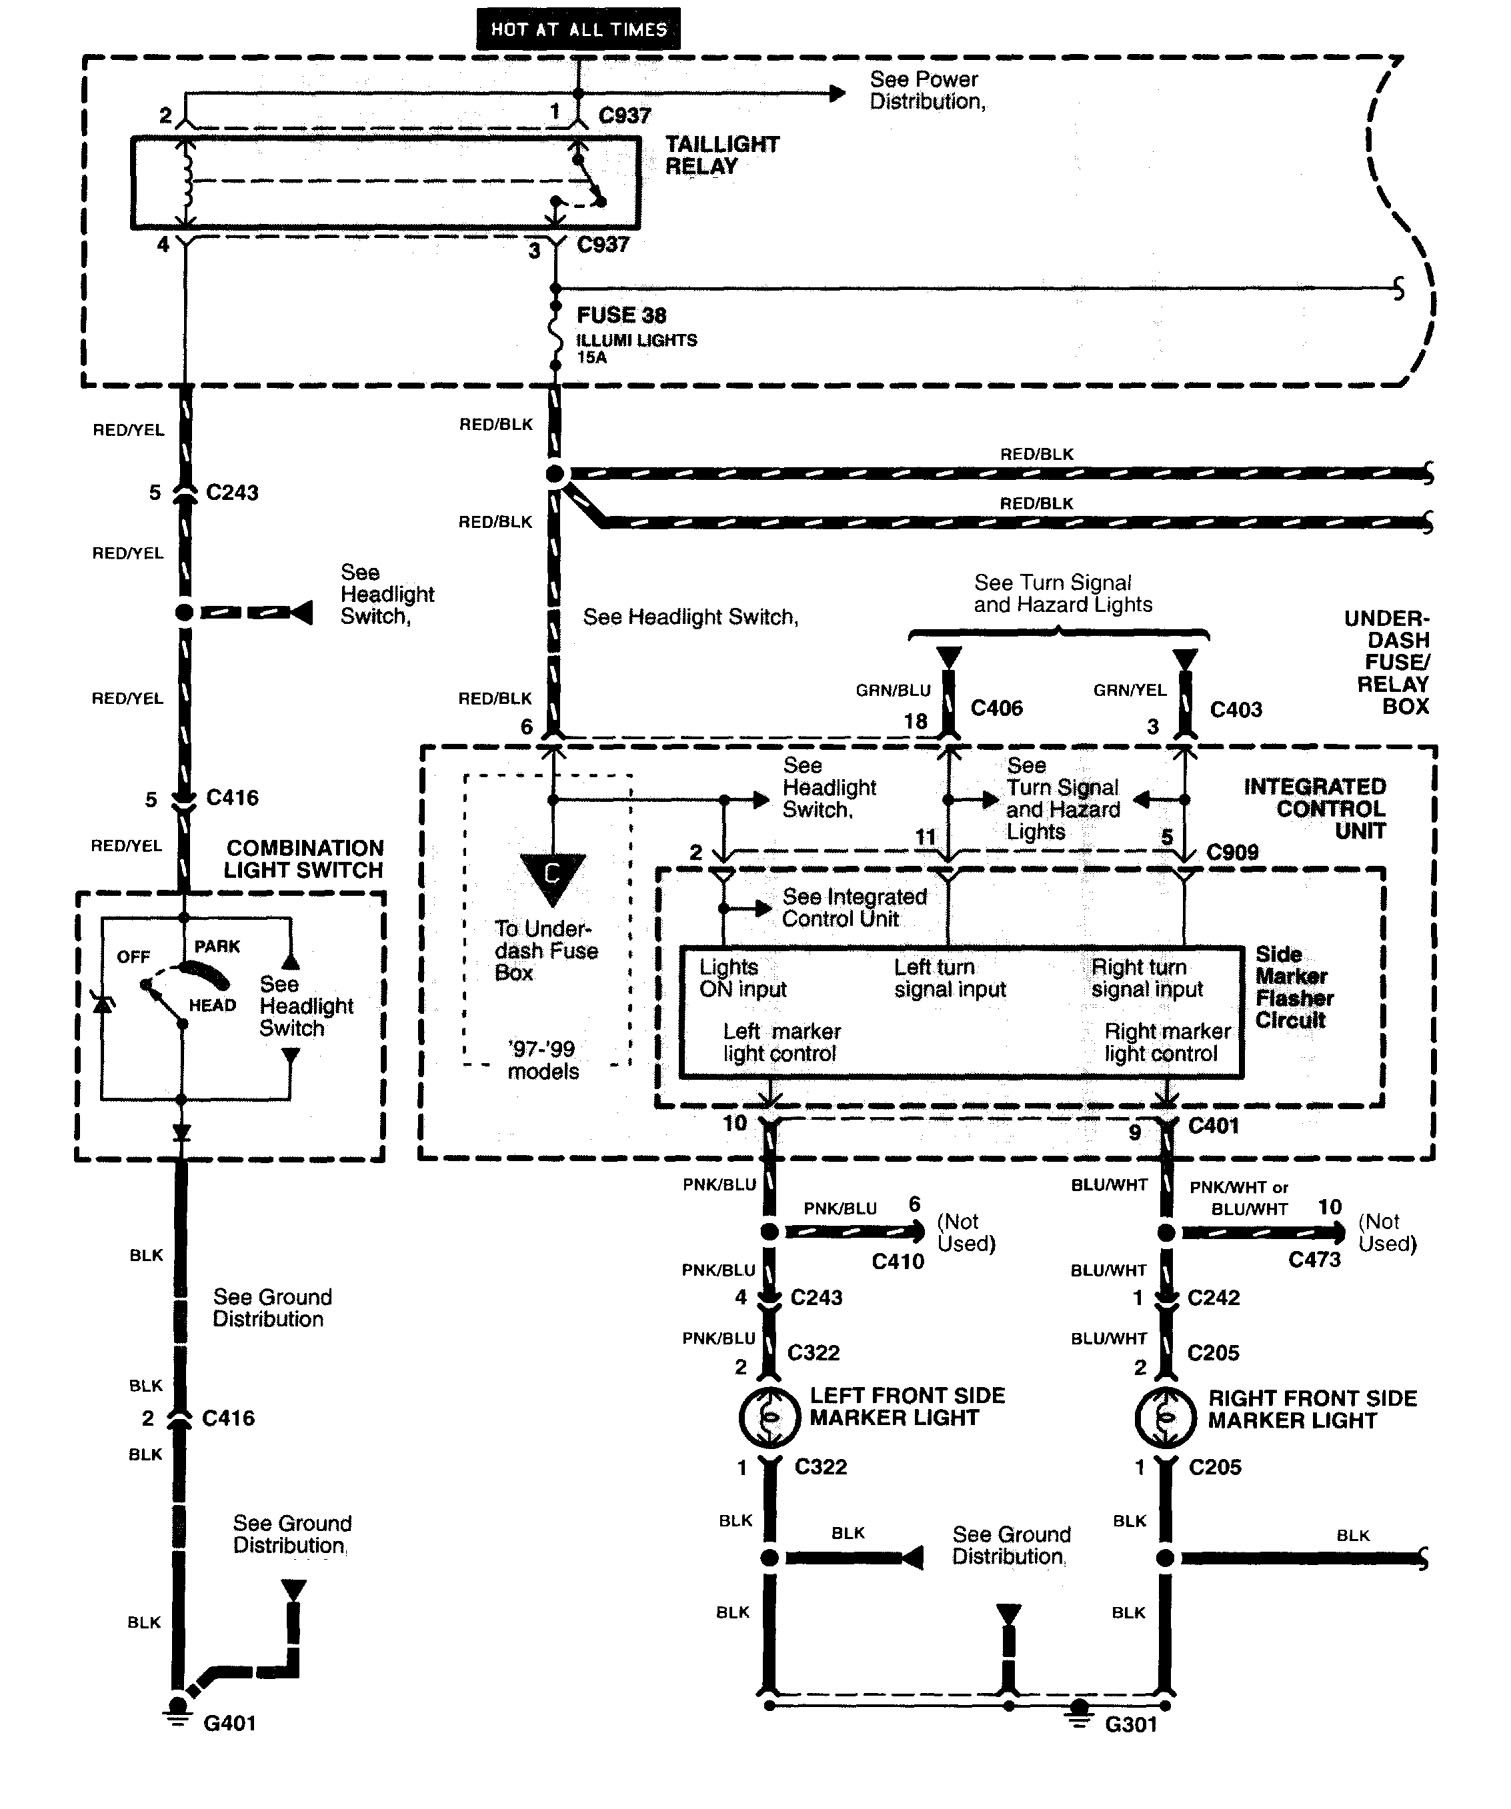 Emerson Pool Pump Motor Diagram Real Wiring Modern Waterway Pumps 3721621 Festooning Ao Smith Manual Switch